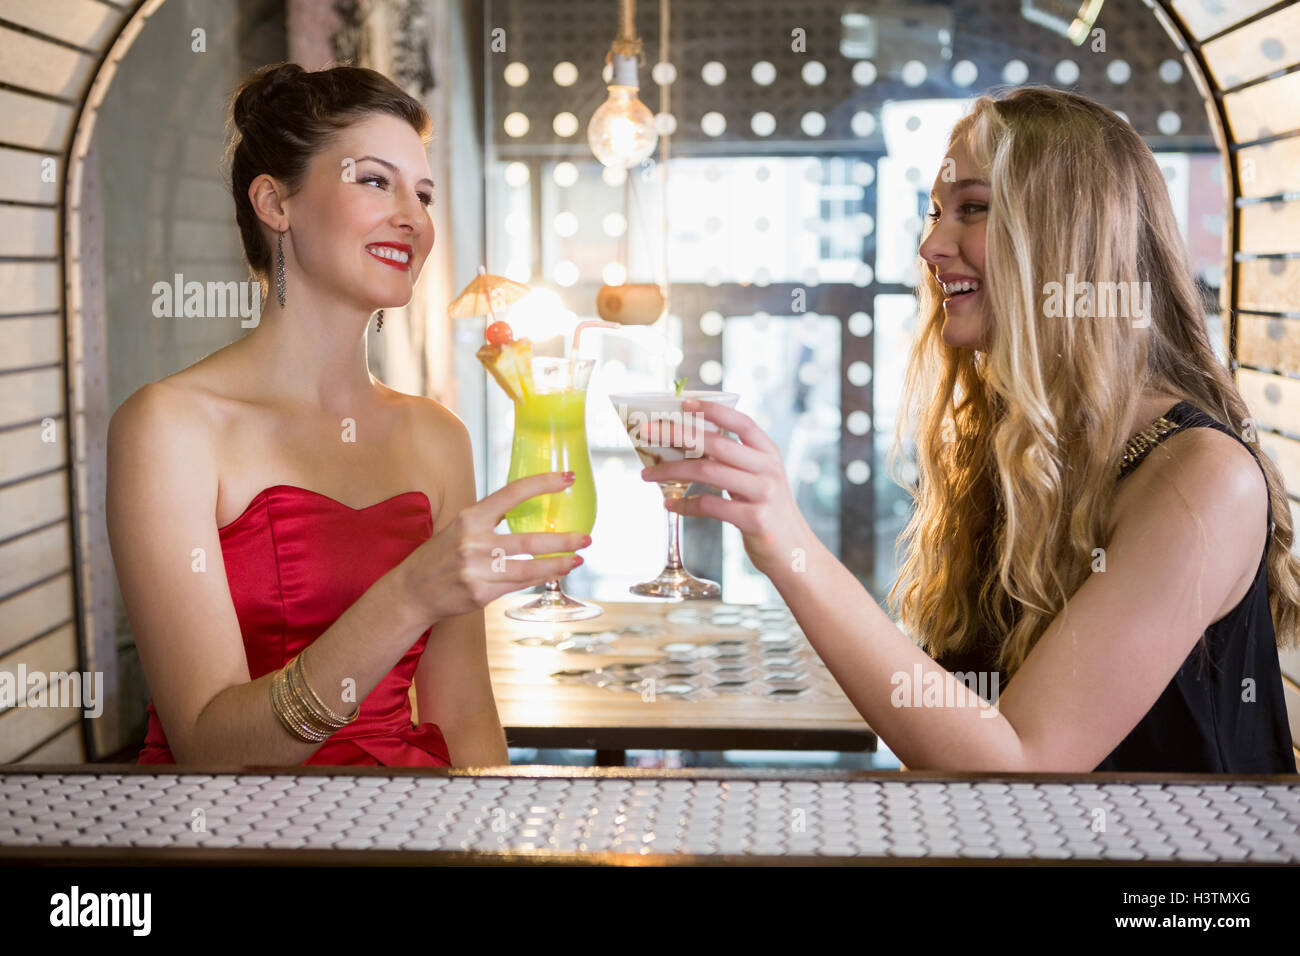 Female friends toasting a glass of cocktail in bar - Stock Image